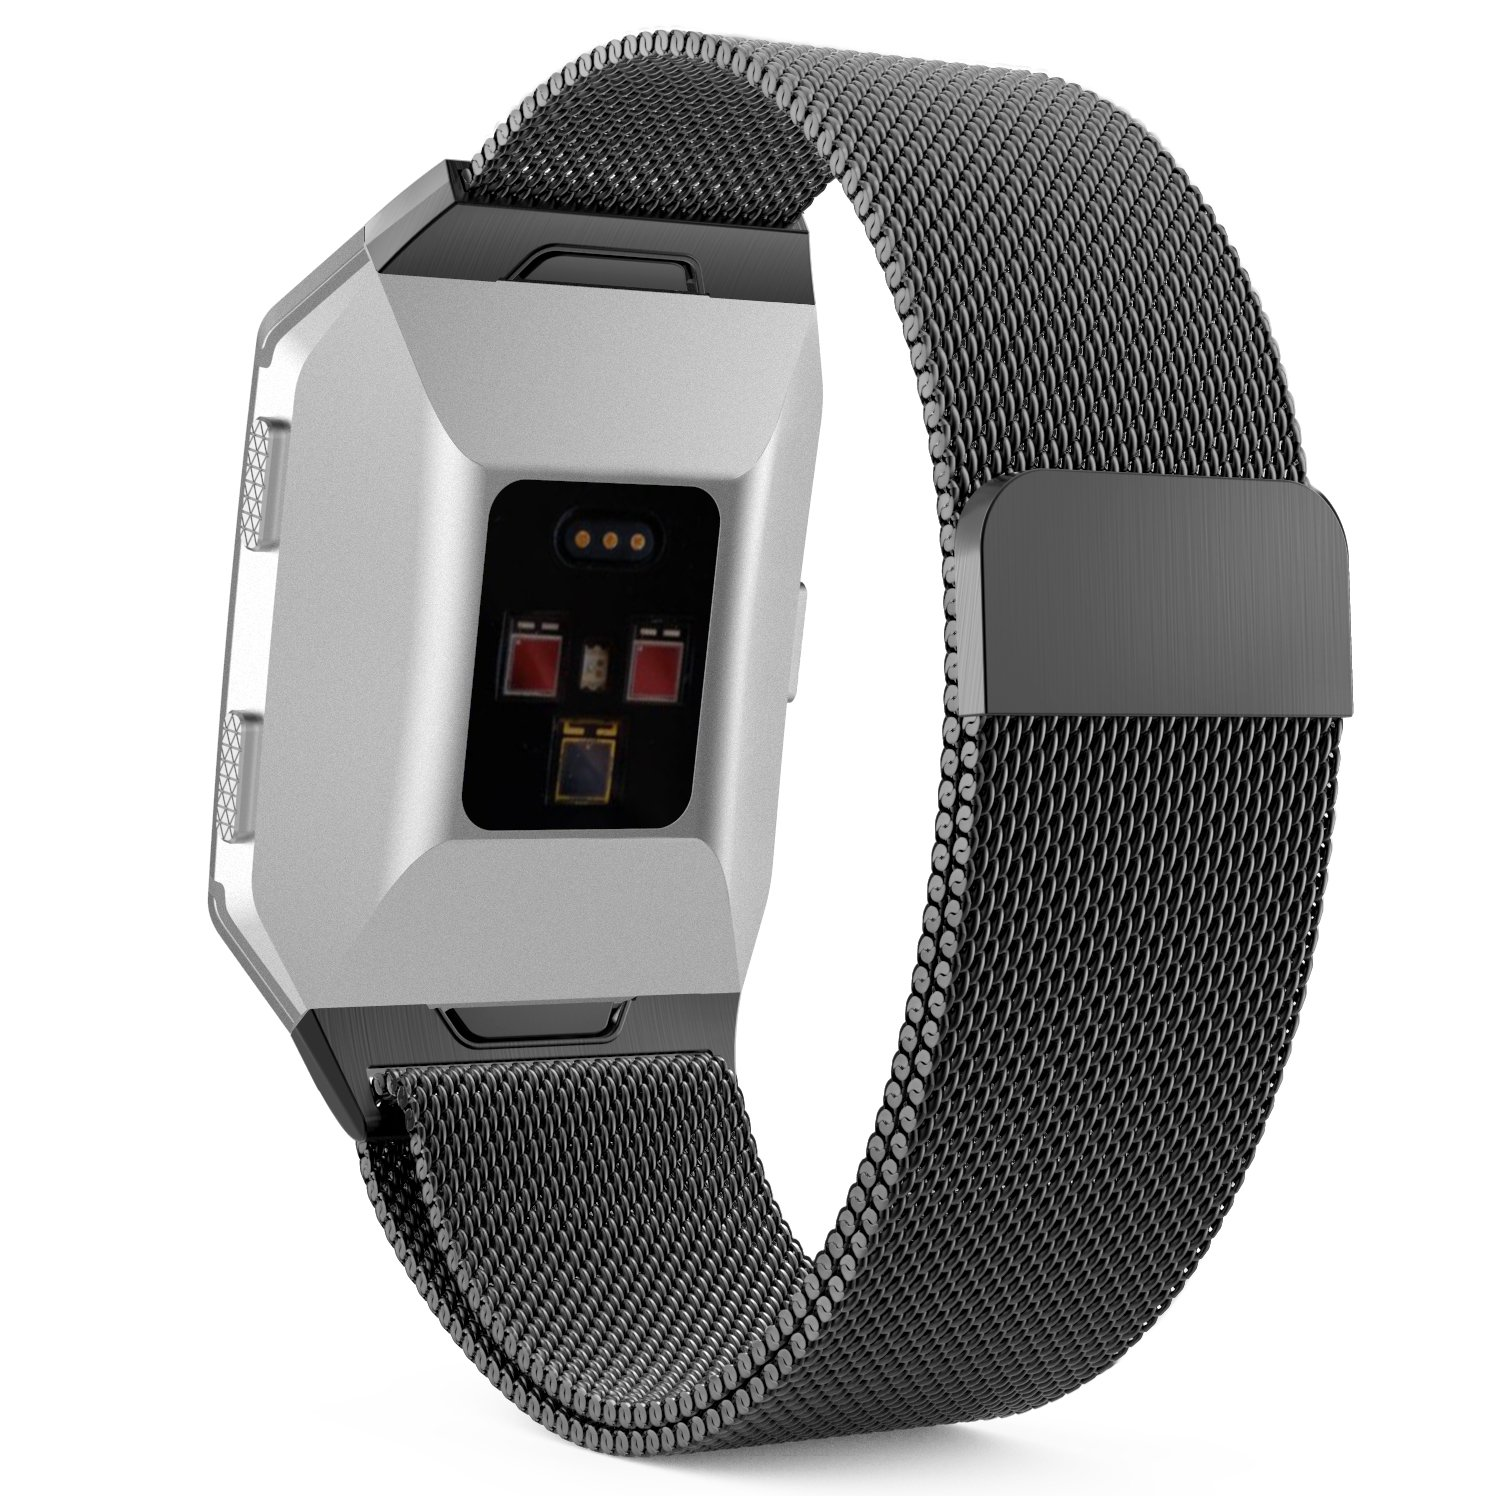 MoKo Fitbit Ionic Watch Band , Milanese Loop Stainless Steel Mesh Bracelet Watch Strap Wristband with Unique Magnet Lock for Fitbit Ionic Smart Watch